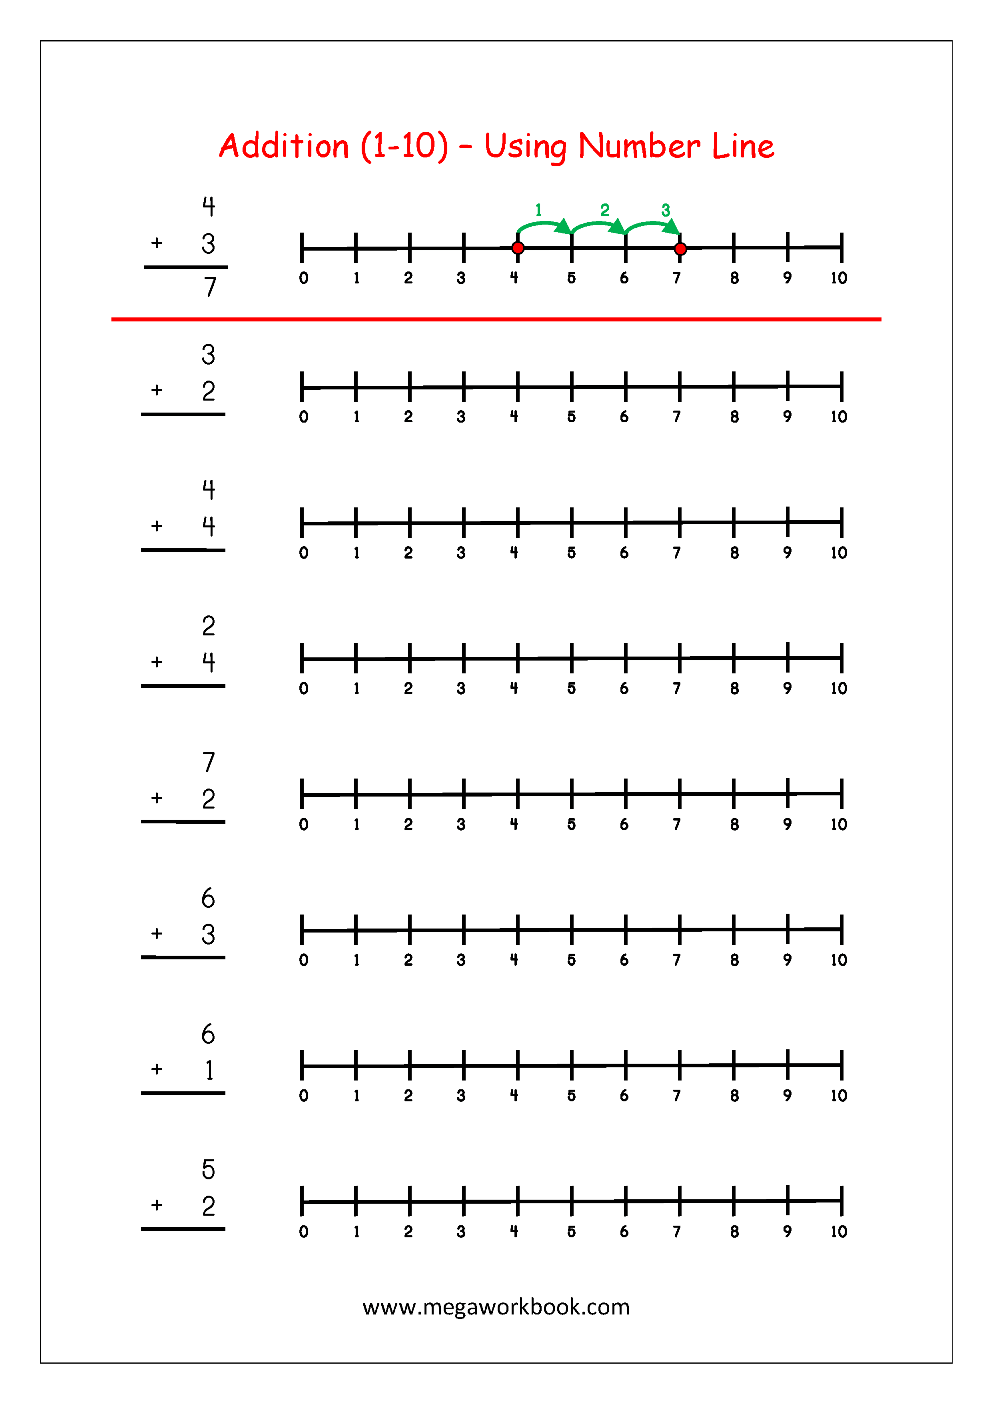 hight resolution of Free Printable Number Addition Worksheets (1-10) For on Worksheets Ideas  5538